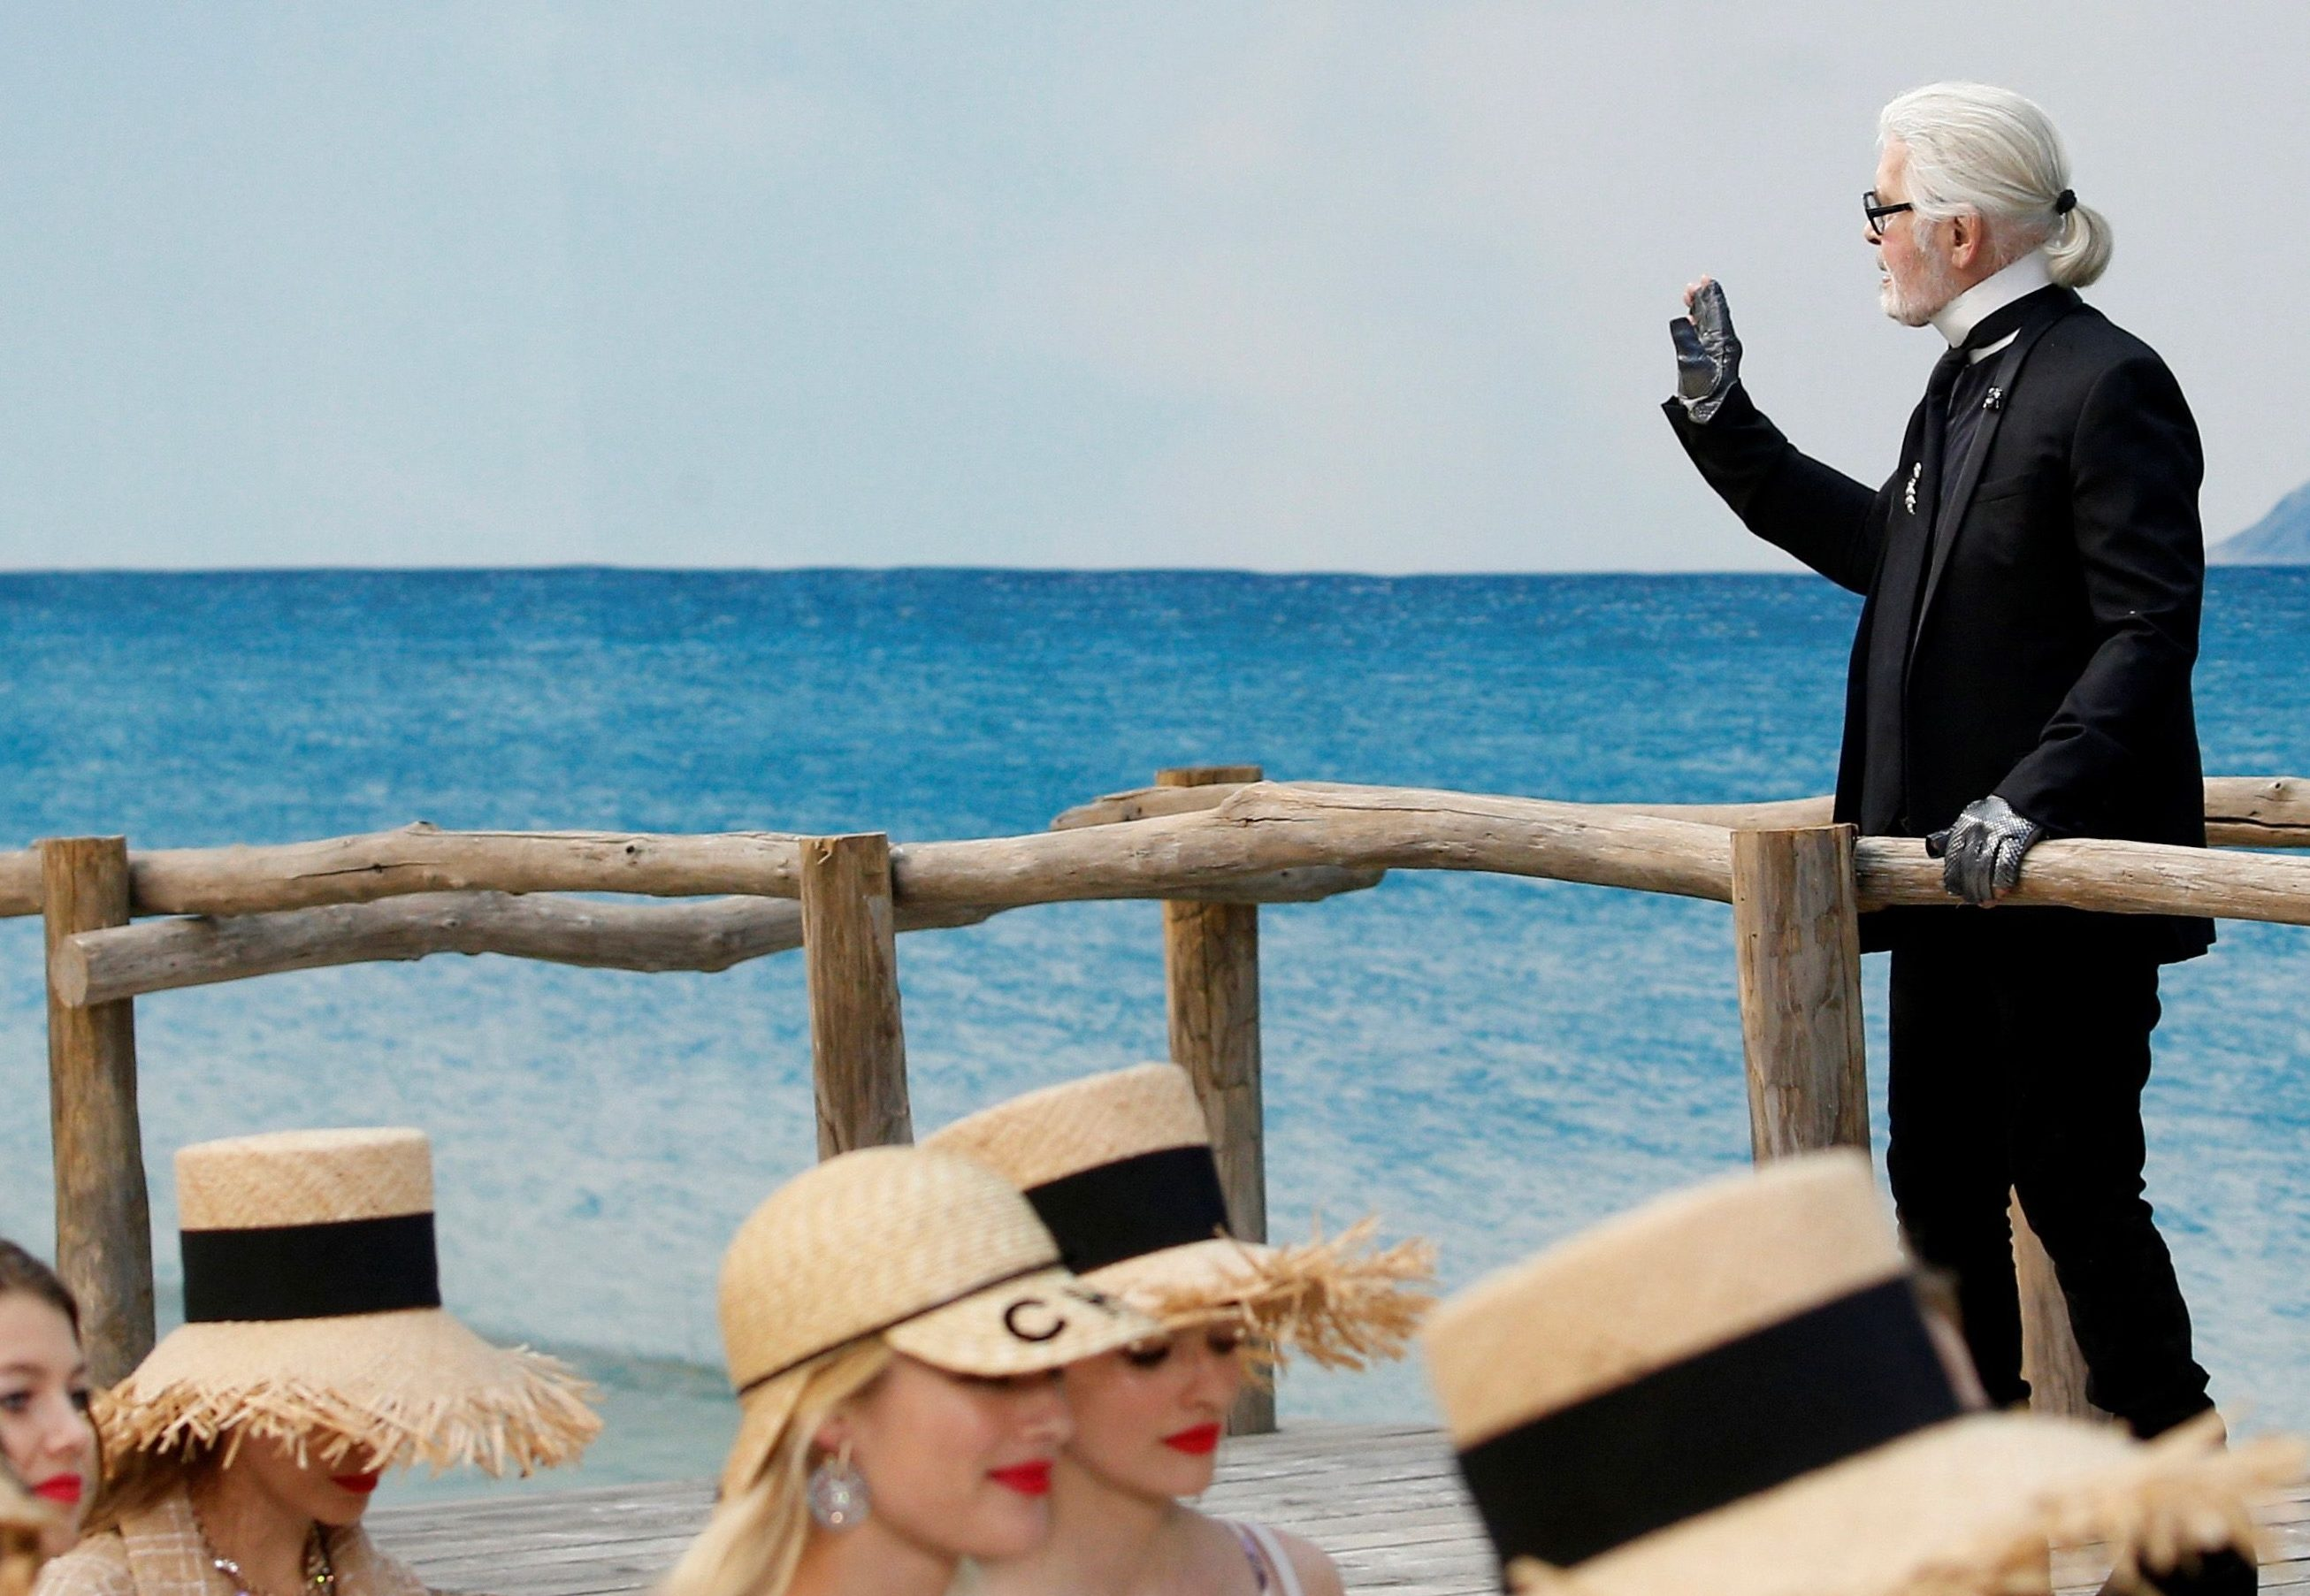 Lagerfeld in his full regalia at the Chanel Spring/Summer 2019 show.